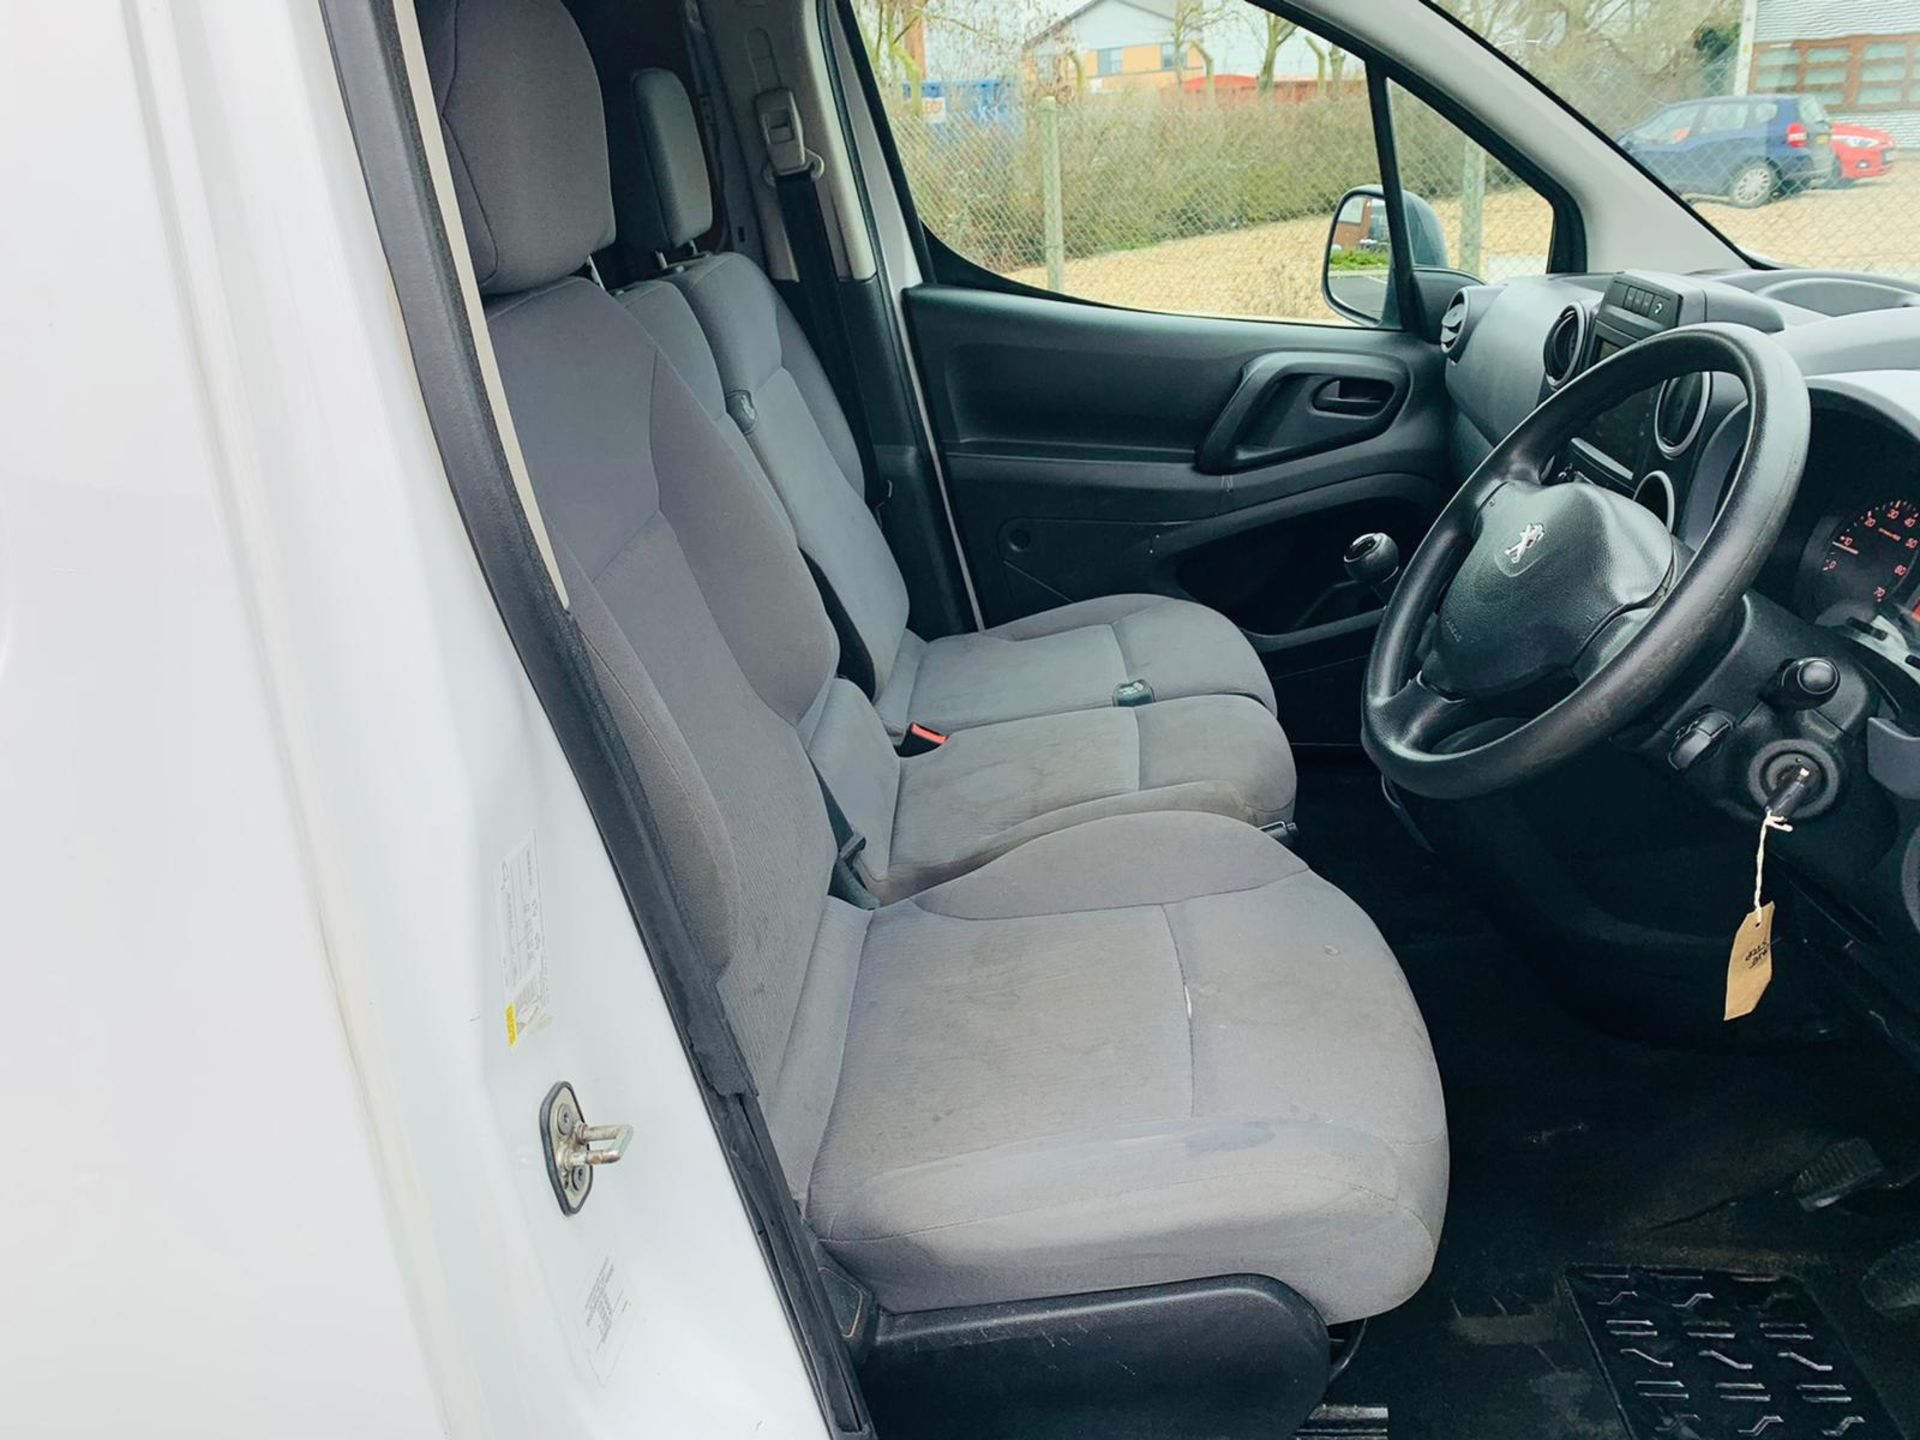 (RESERVE MET) Peugeot Partner 1.6 HDI Professional - 2017 Model - Air Con - Service History - Image 15 of 22